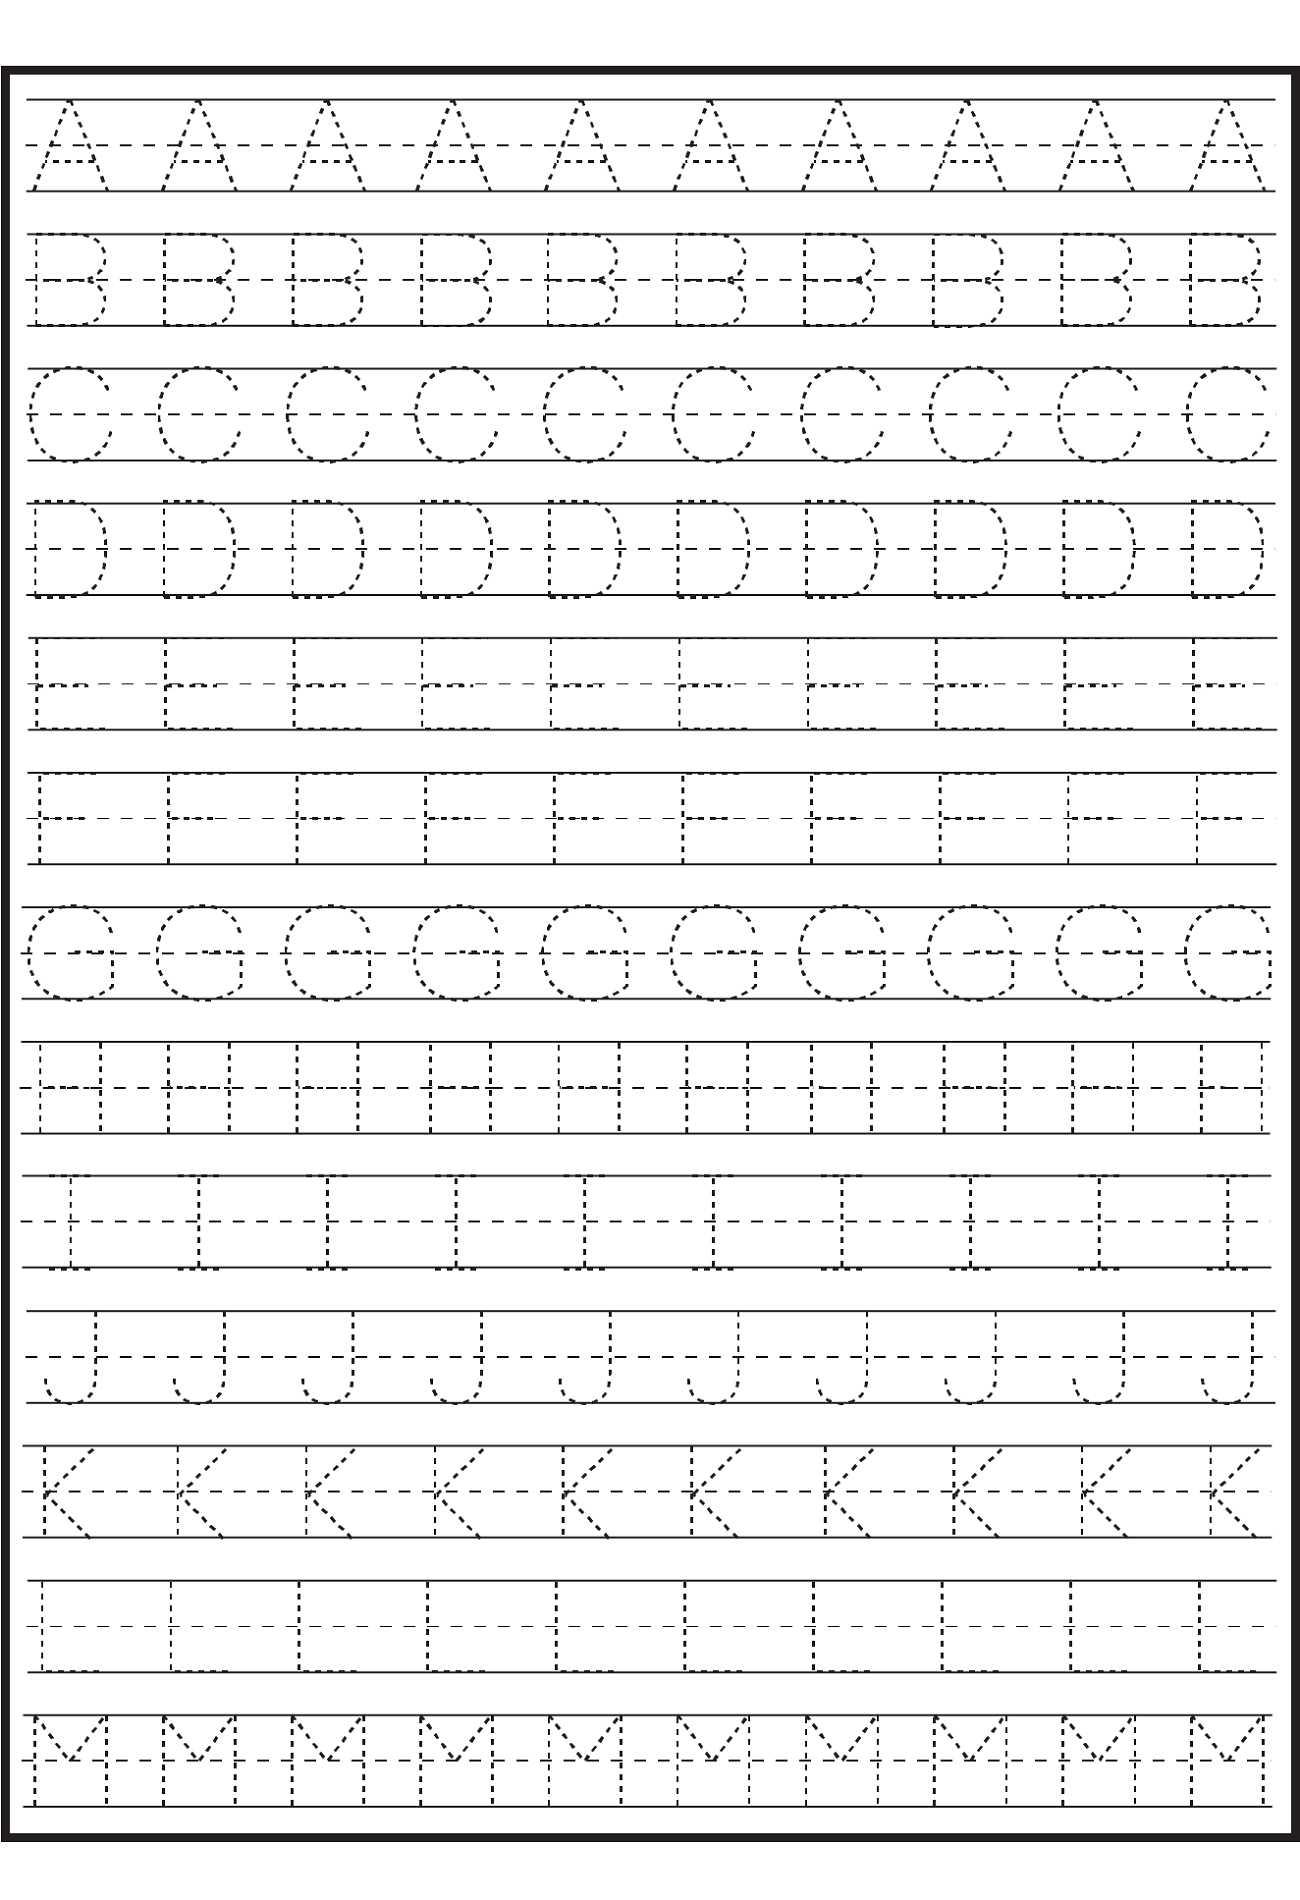 Worksheet. Alphabet Writing Practice. Noconformity Free Worksheet